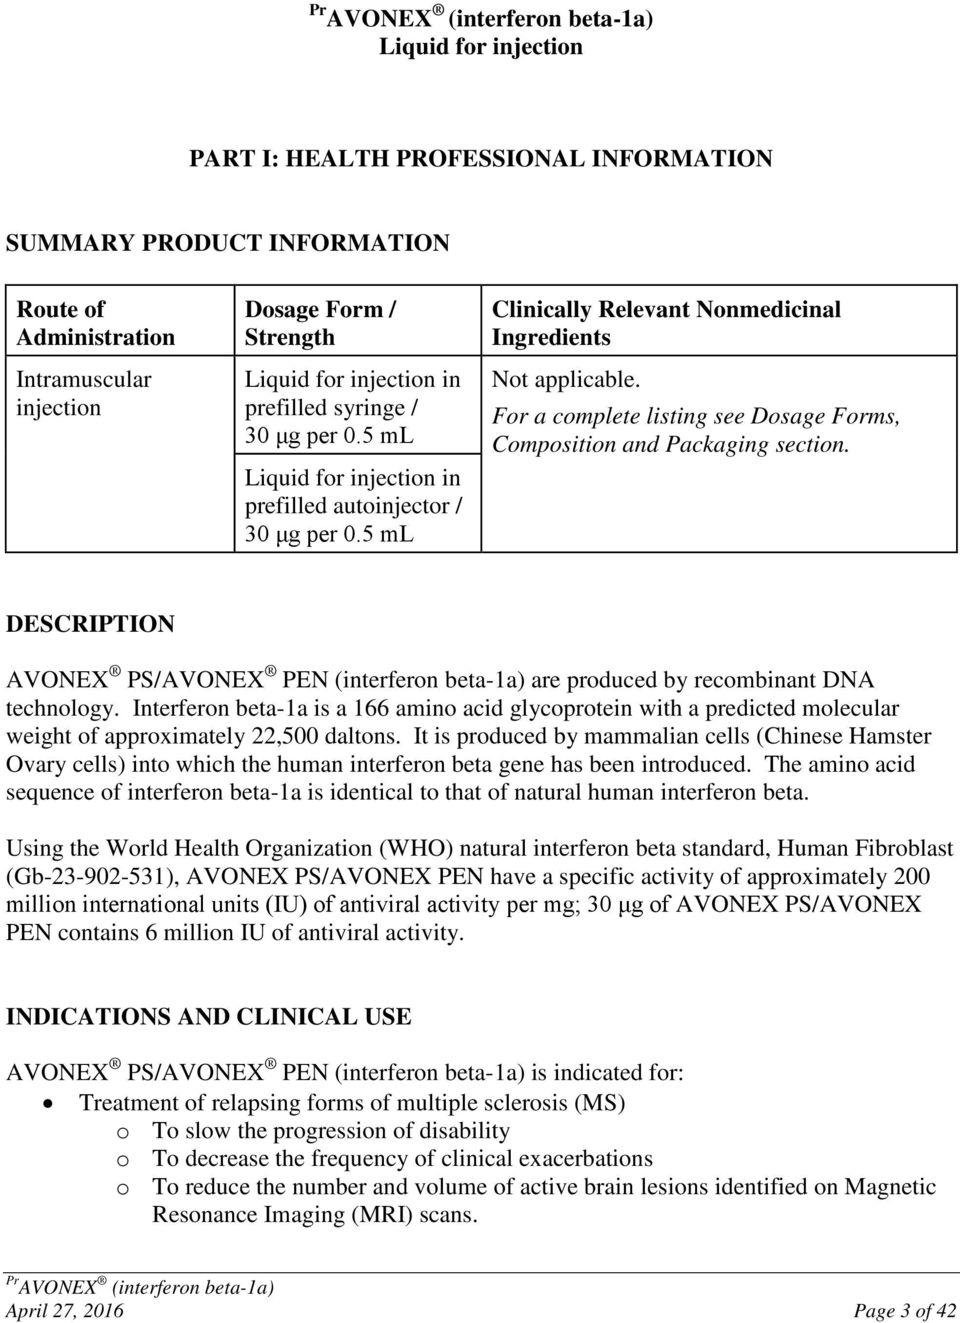 For A Complete Listing See Dosage Forms Composition And Packaging Section Description Avonex Ps